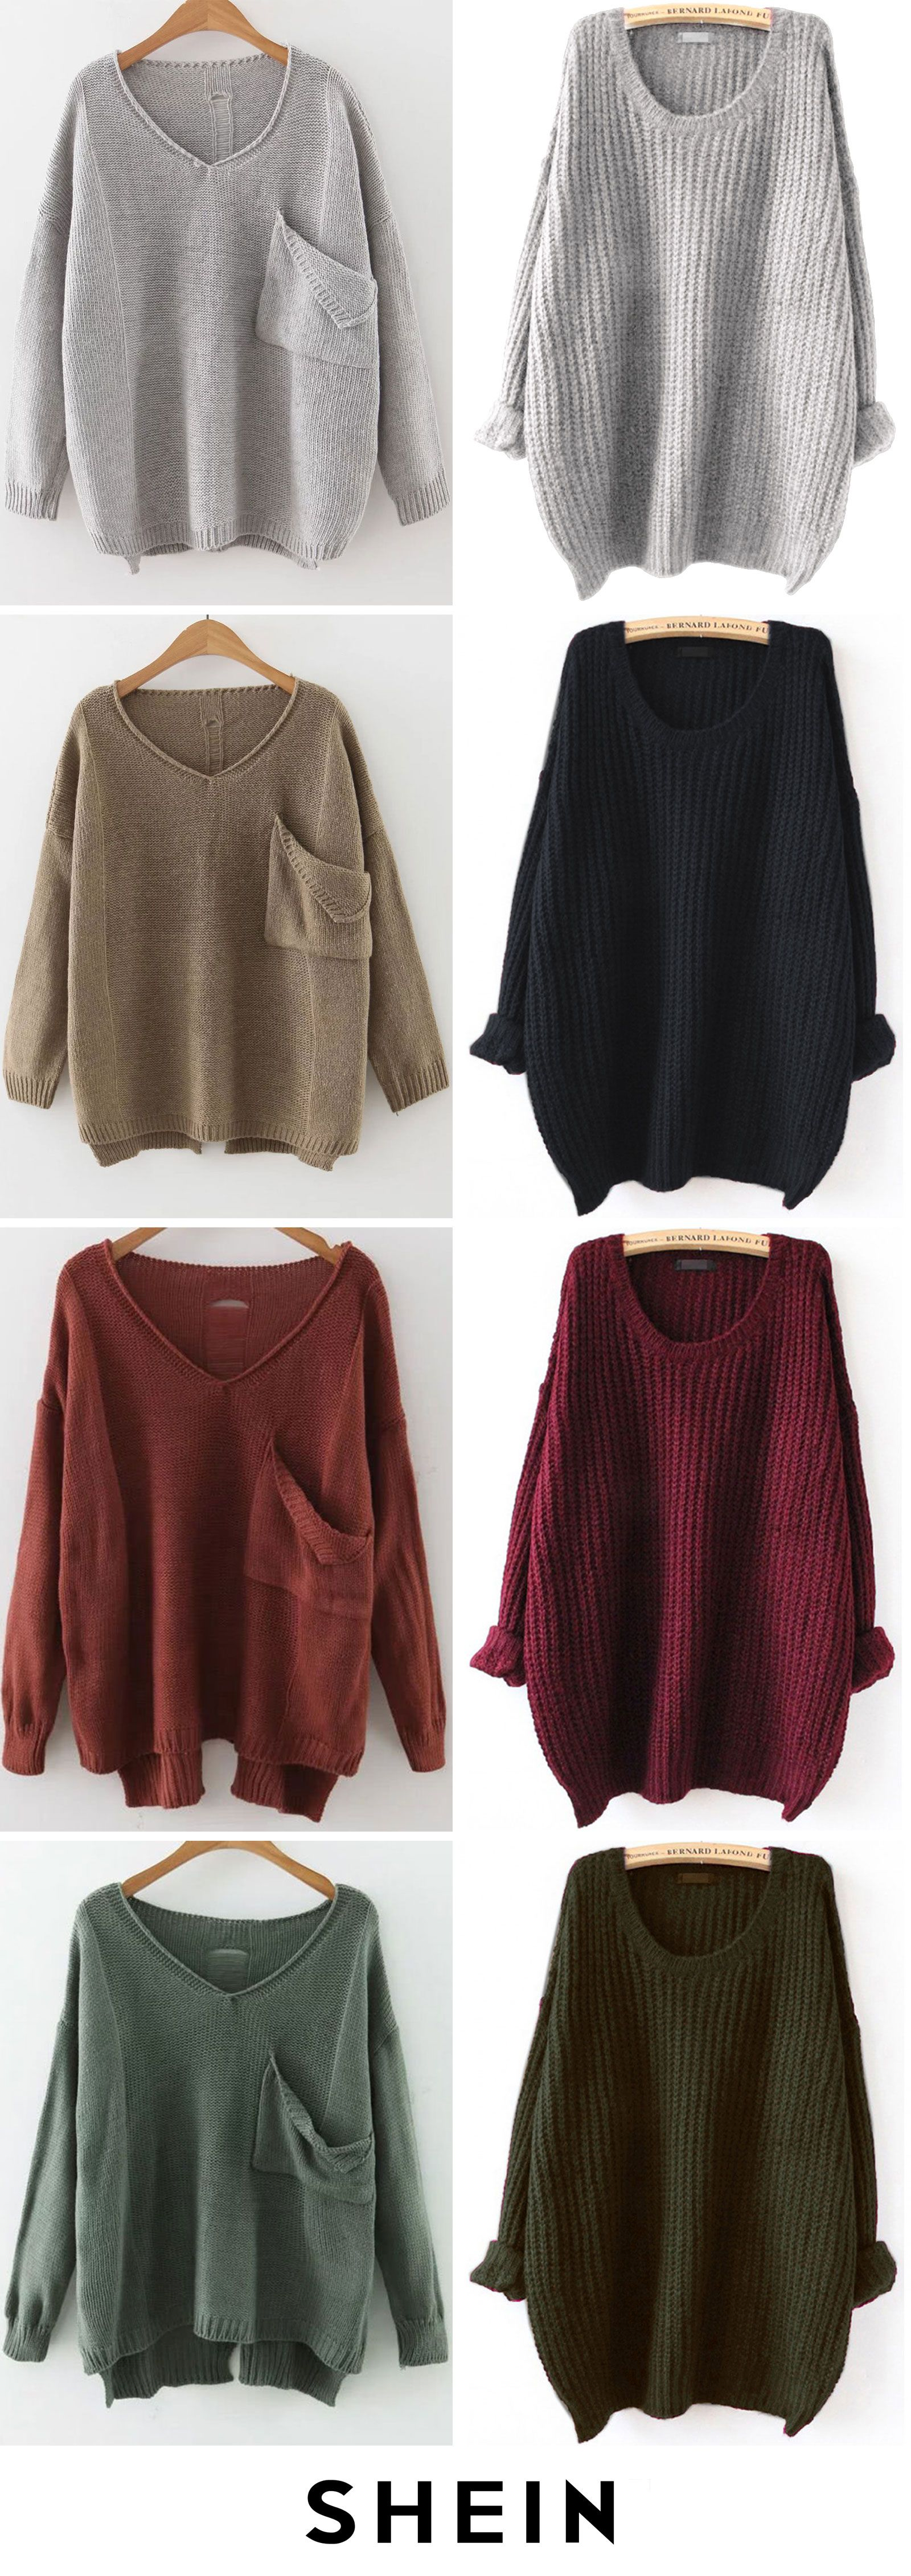 Loose sweaters | Spotlights | Pinterest | Loose sweater, Clothes ...